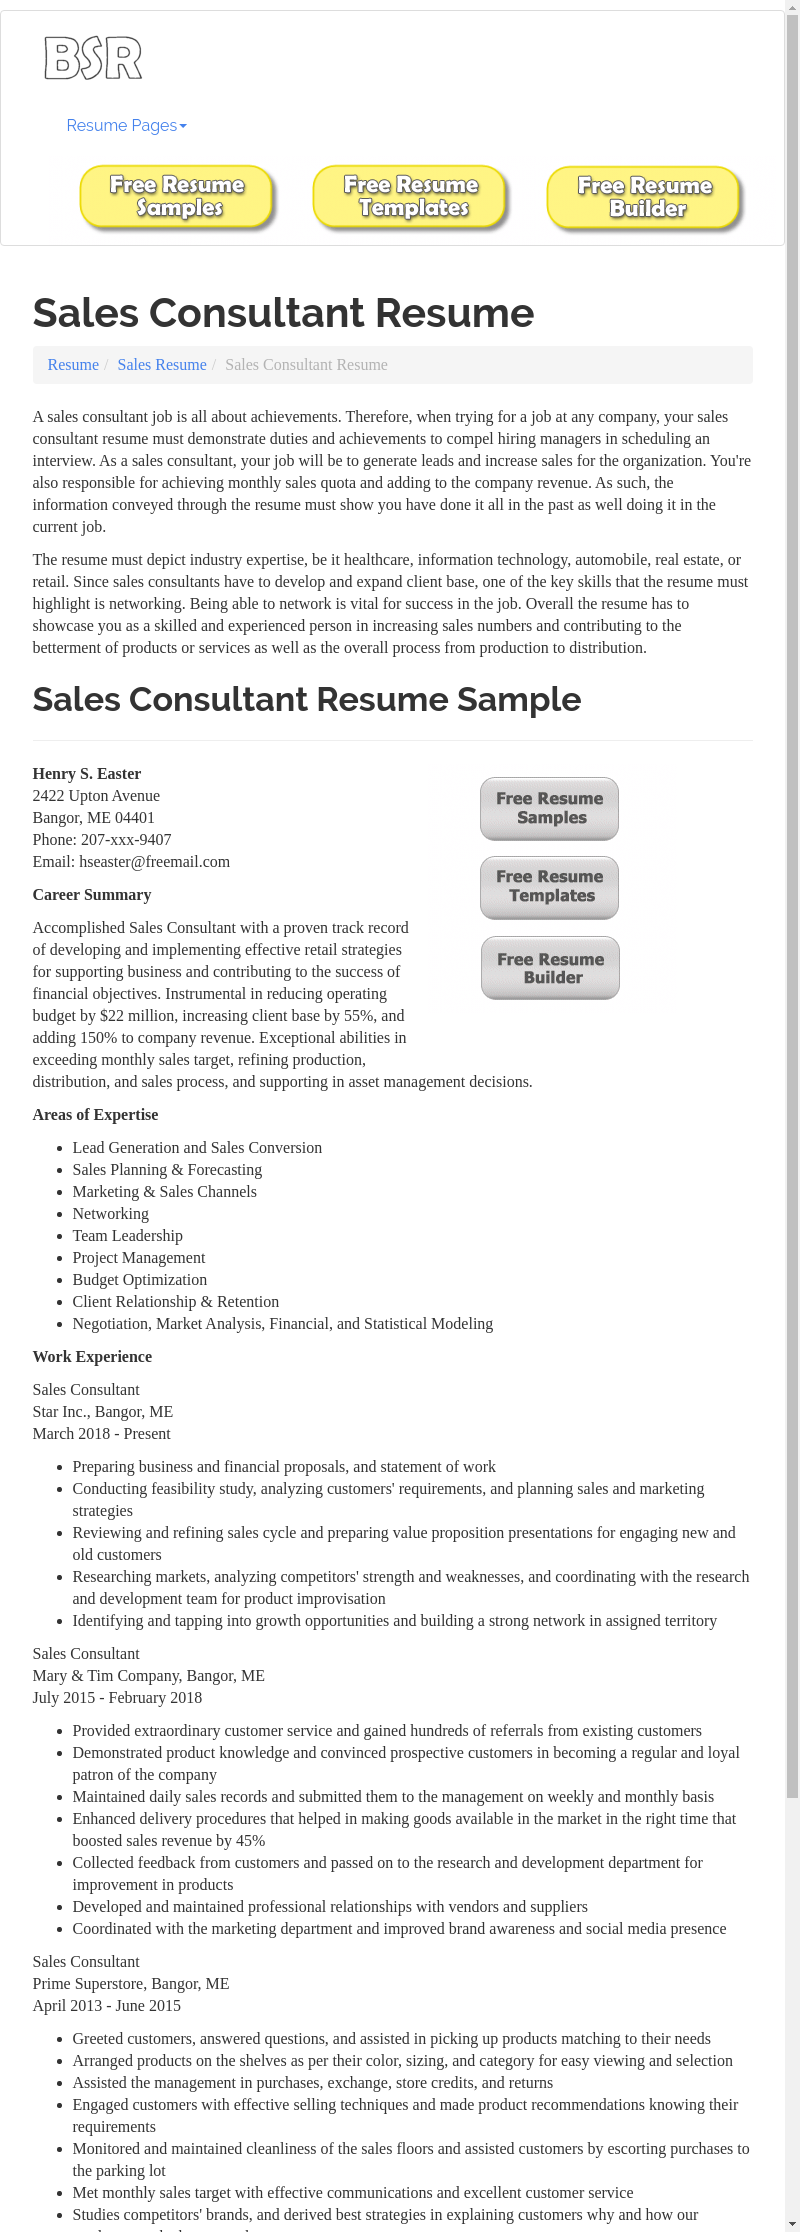 sales consultant resume sample  the document template